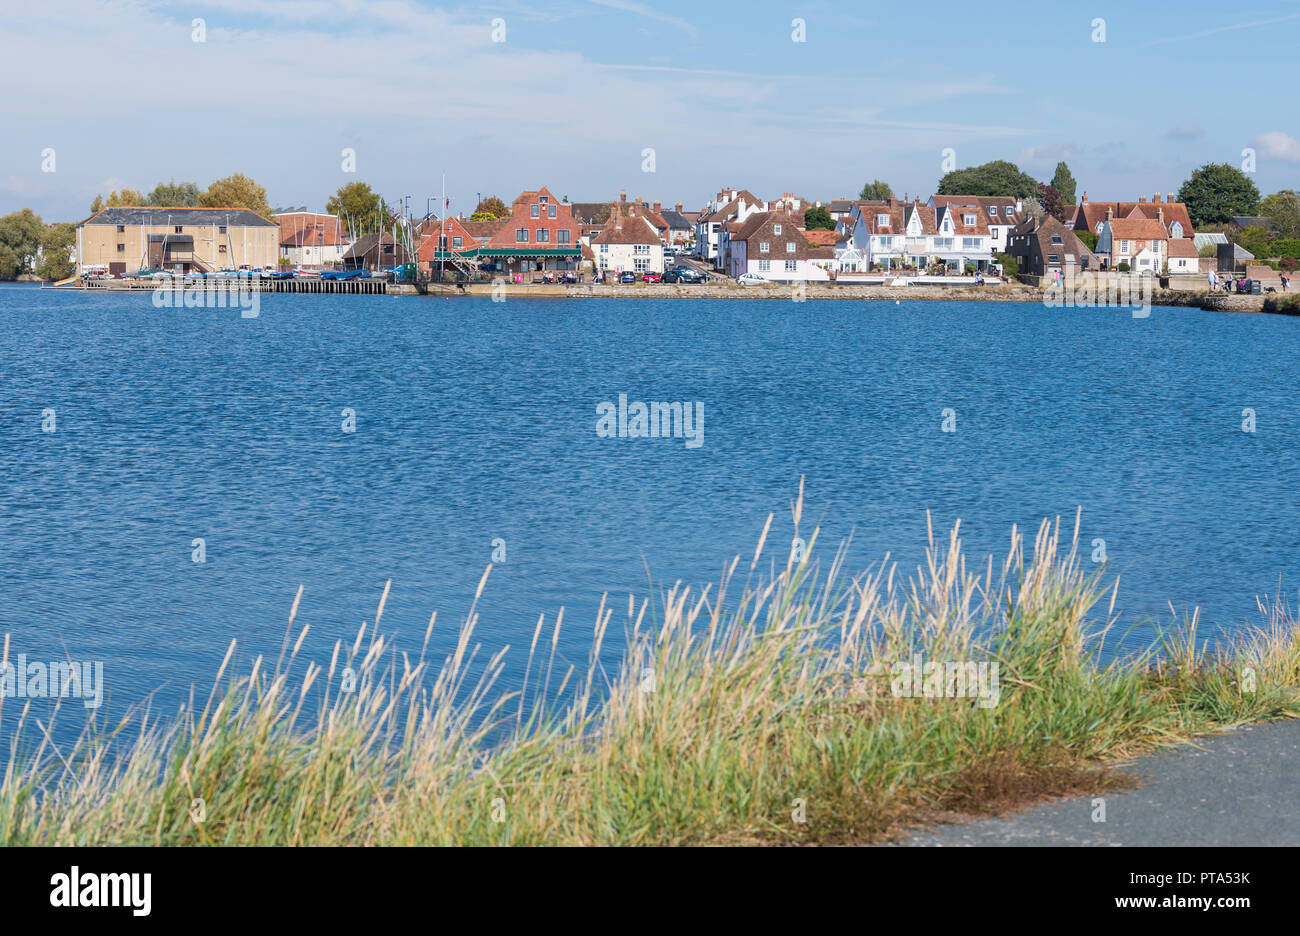 View of the British town of Emsworth across Slipper Mill Pond in Autumn in Emsworth, Hampshire, England, UK. - Stock Image